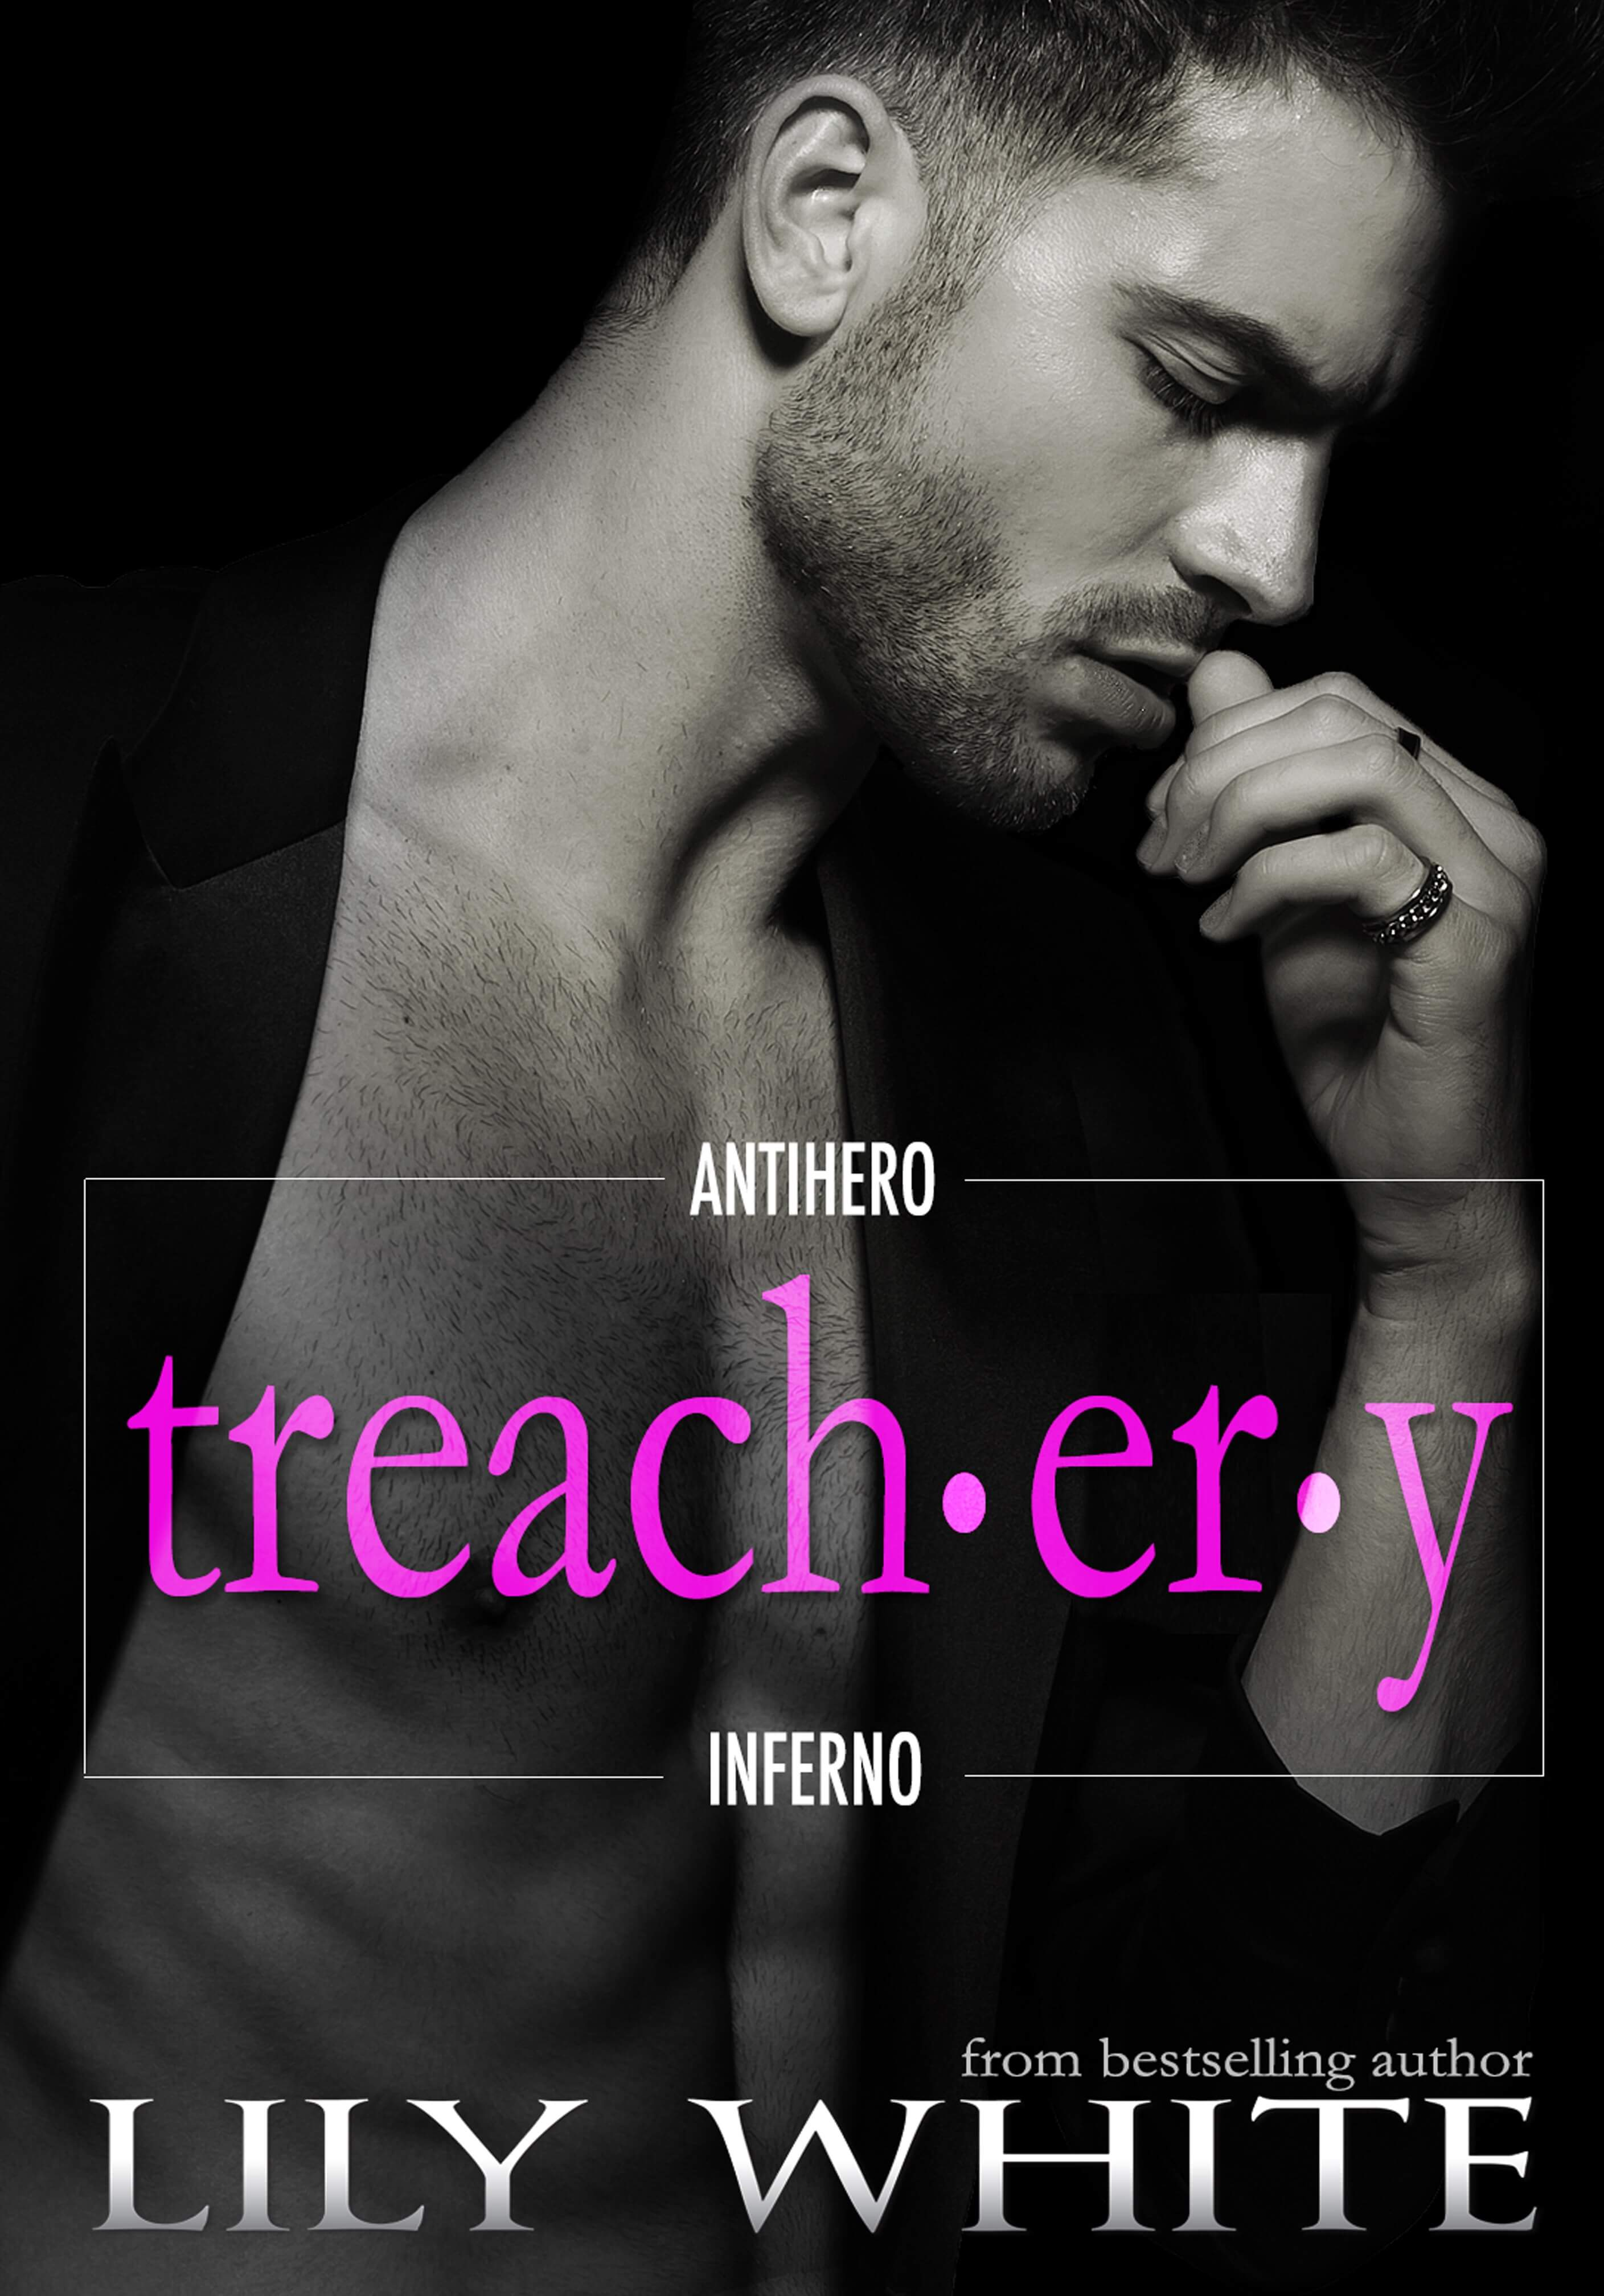 Cover Reveal * Treachery (Antihero Inferno series #1) by Lily White * Coming May 29th * Giveaway * Excerpt